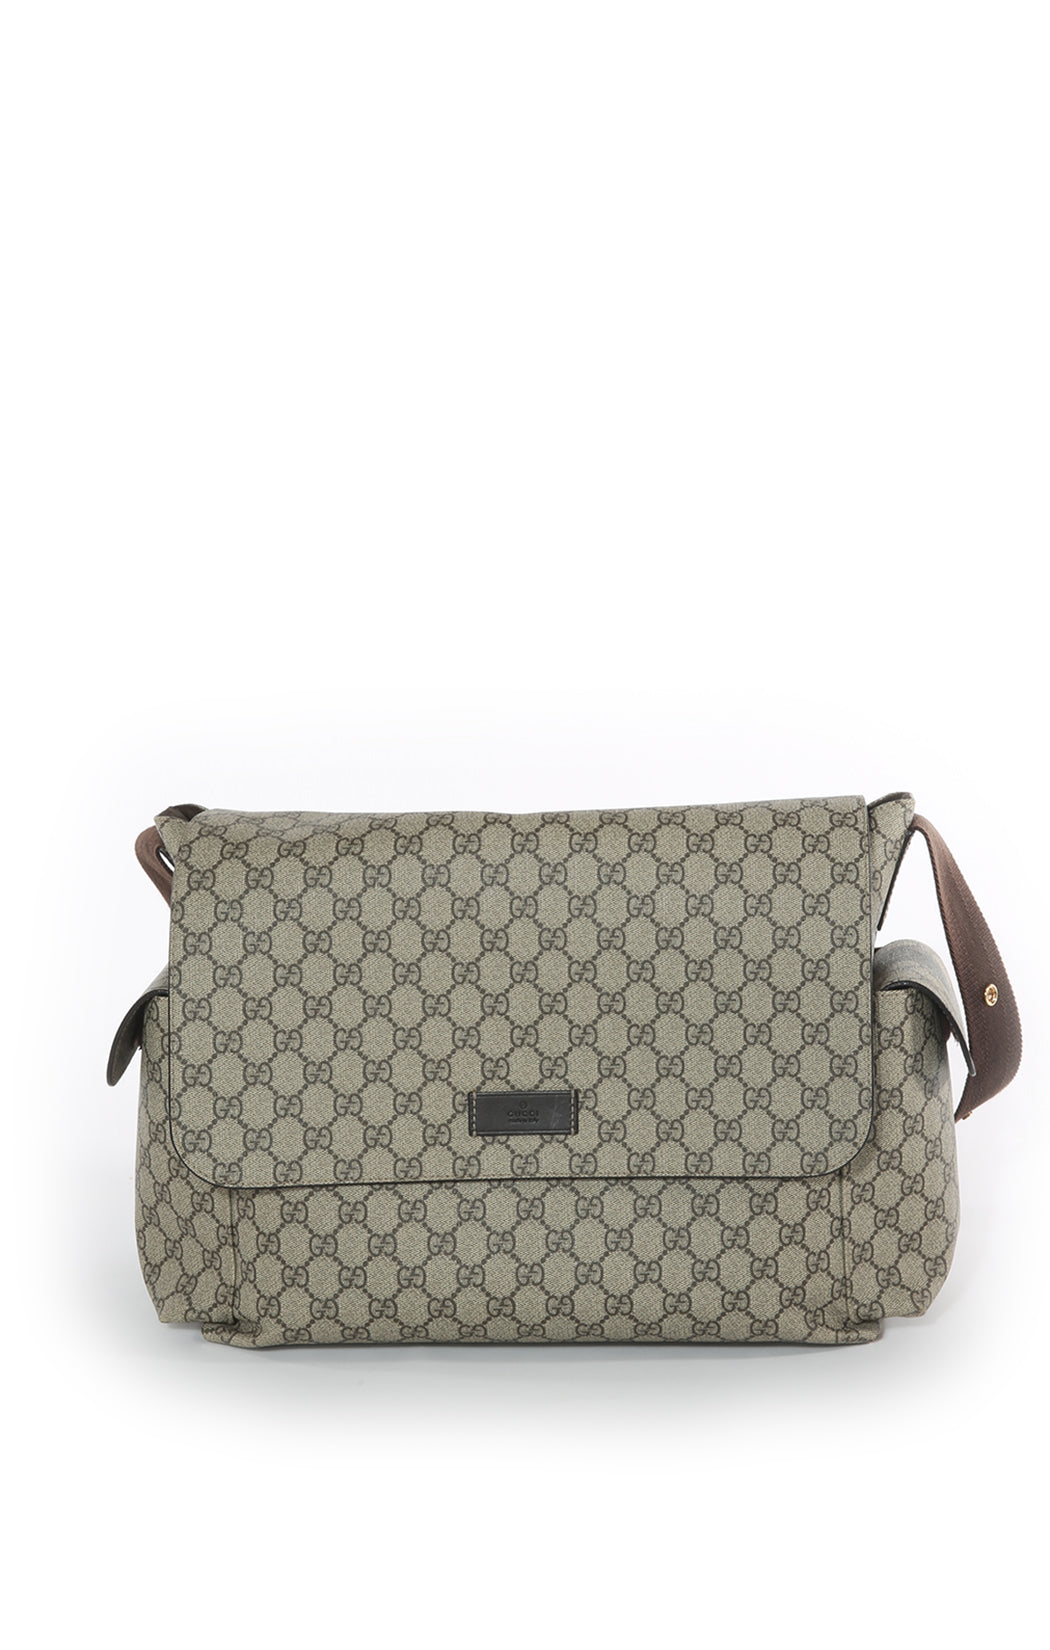 Front view of GUCCI Diaper Bag Size: 15 in x 11 in x 6 in